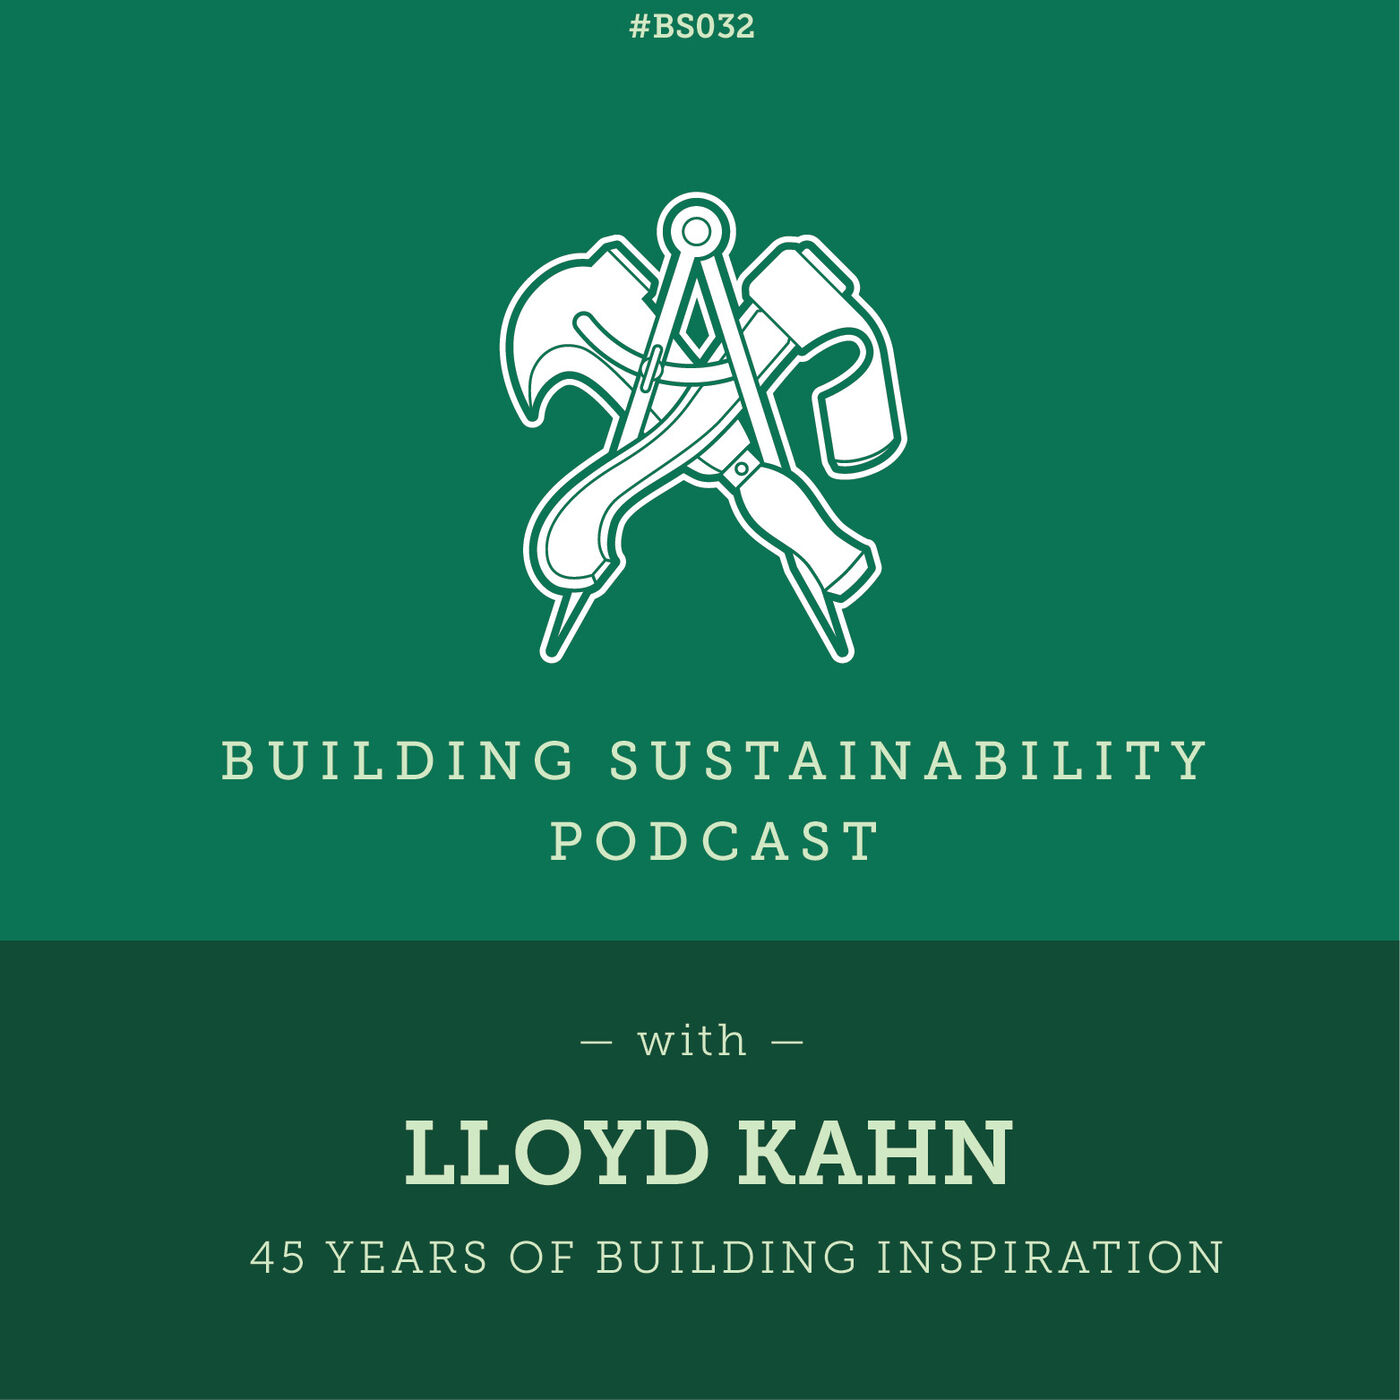 45 years of Building Inspiration - Lloyd Kahn